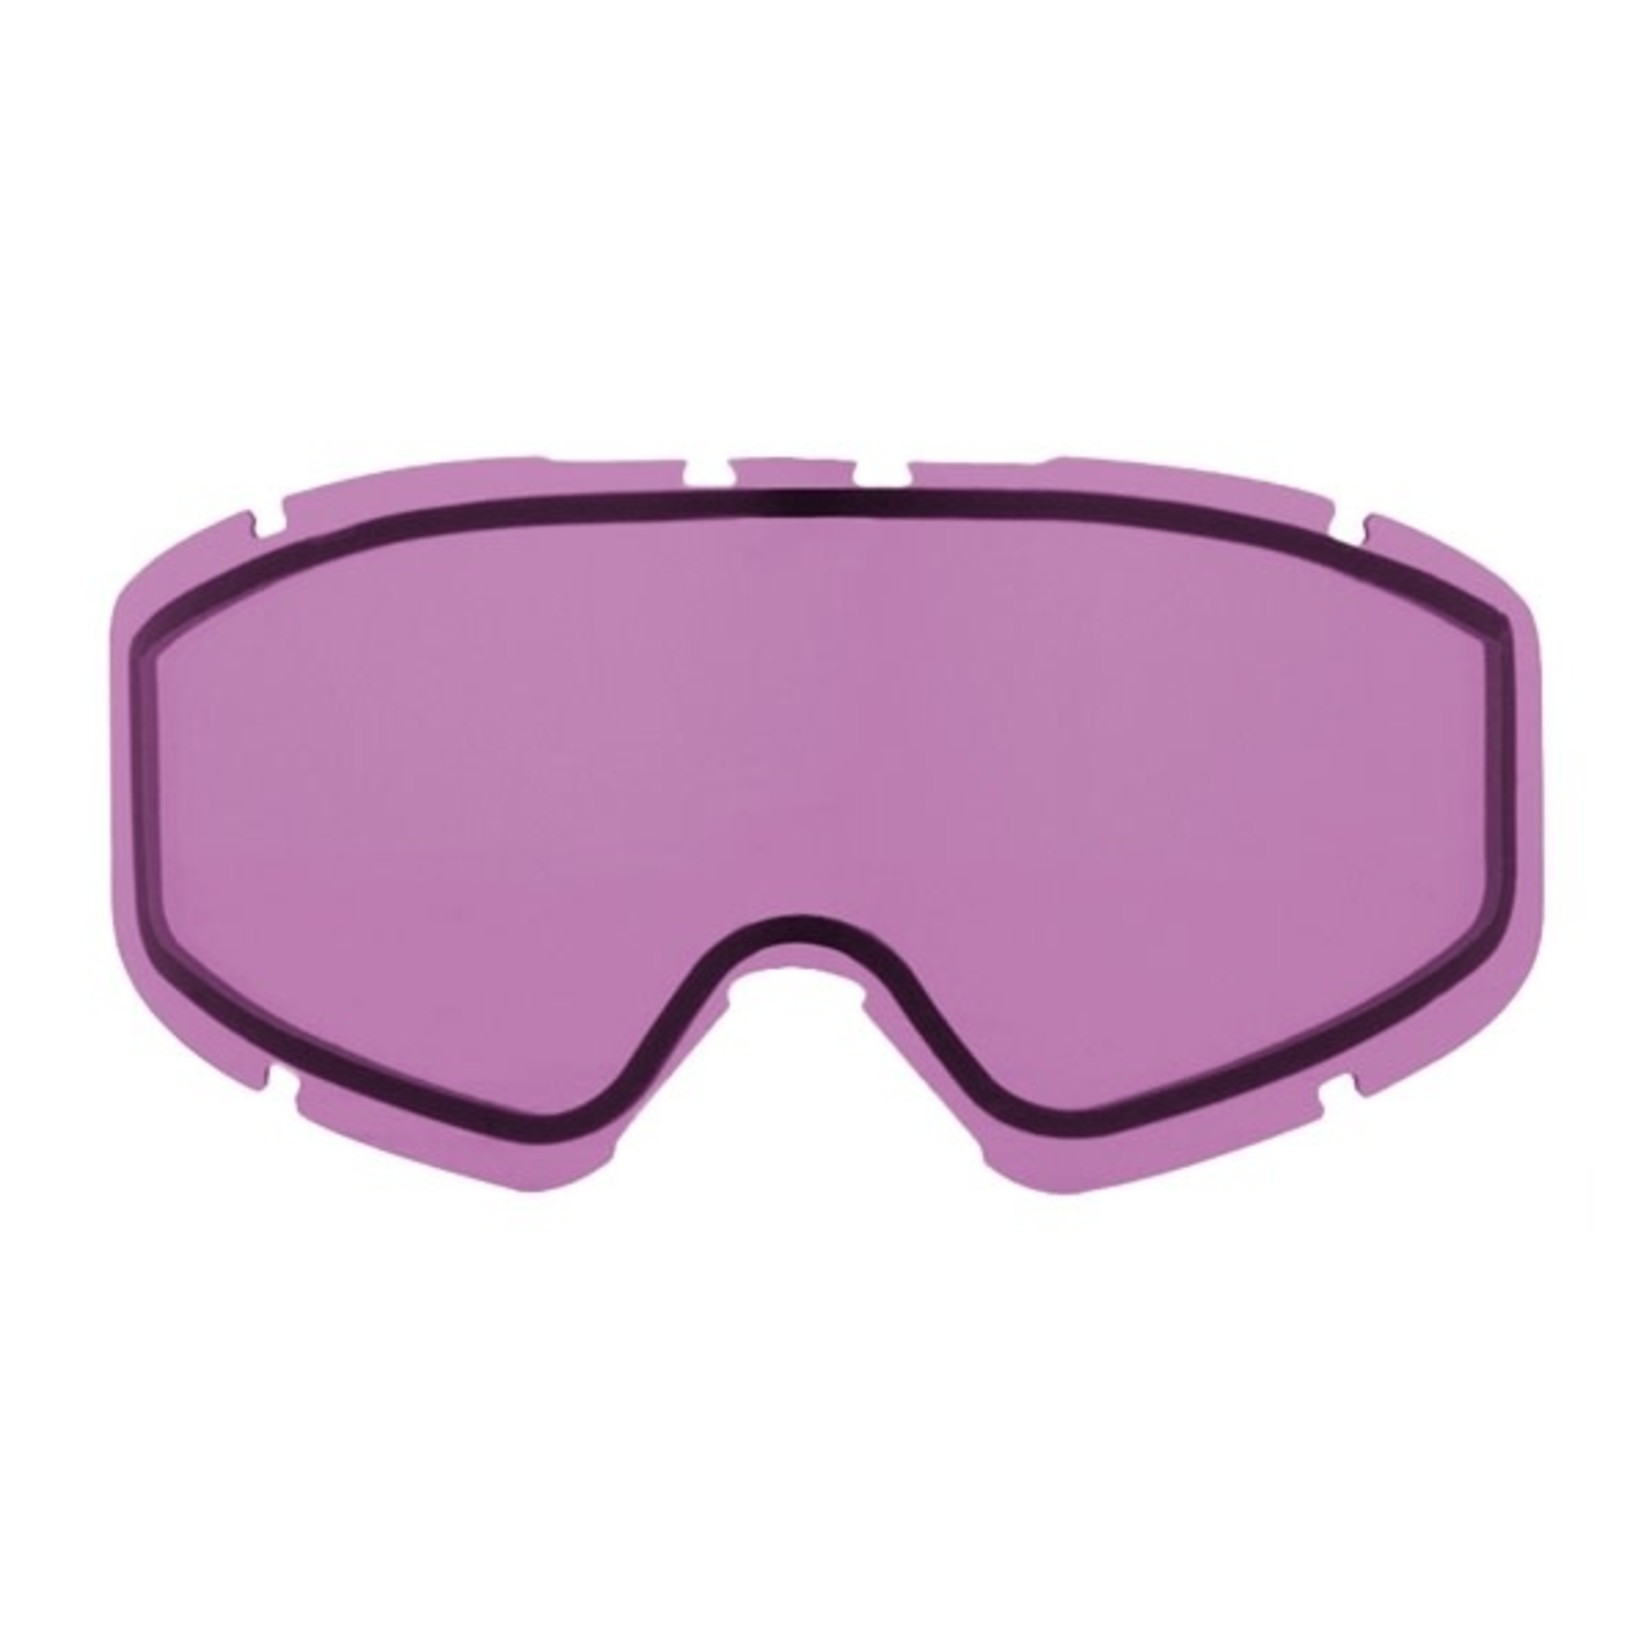 CKX CKX Lens DL 210 Win Trail - Rose